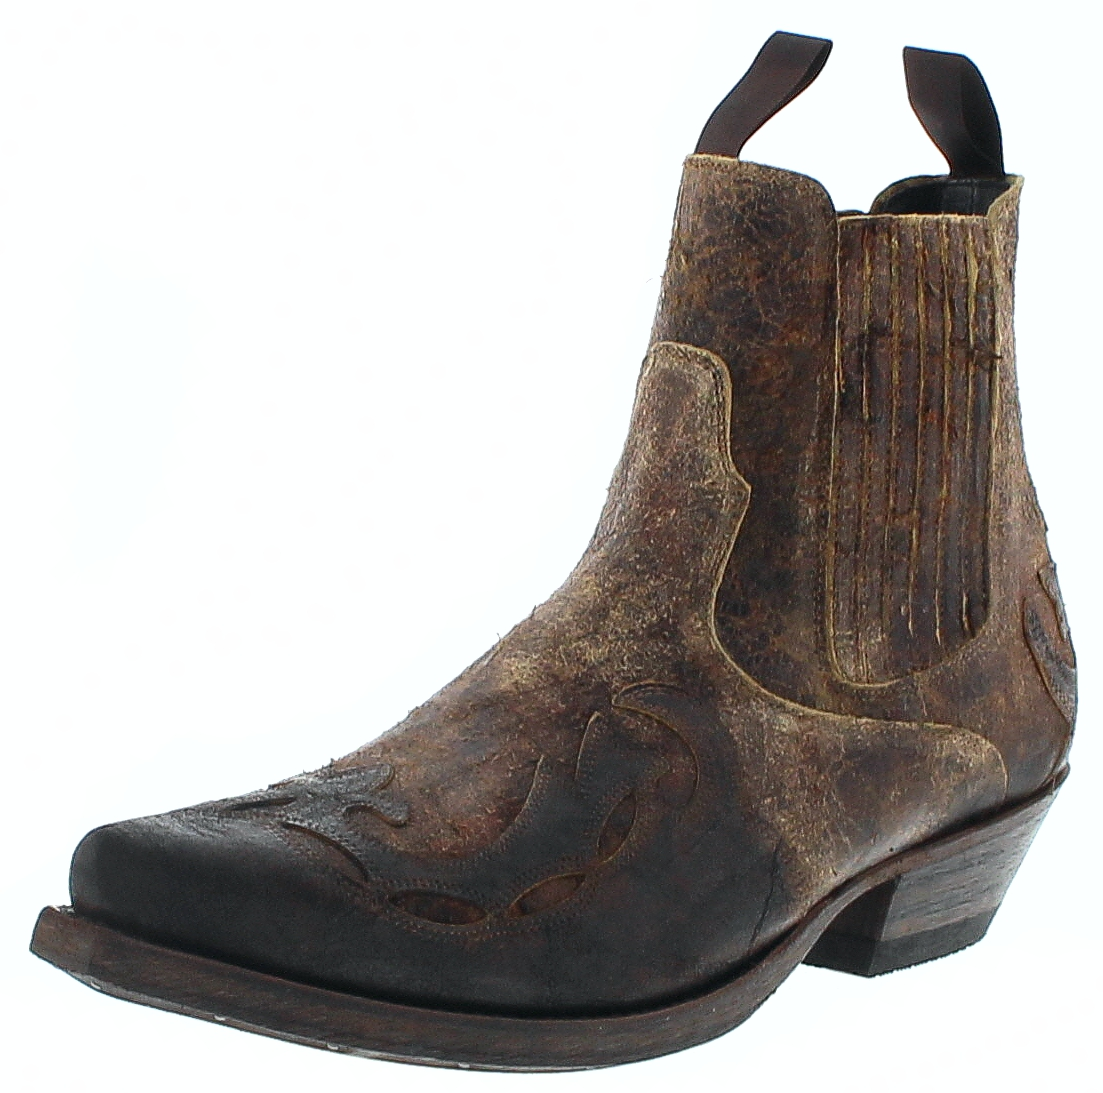 Mayura Boots 1931 HARRIER Test Cuoio Men's Western Ankle Boot - brown